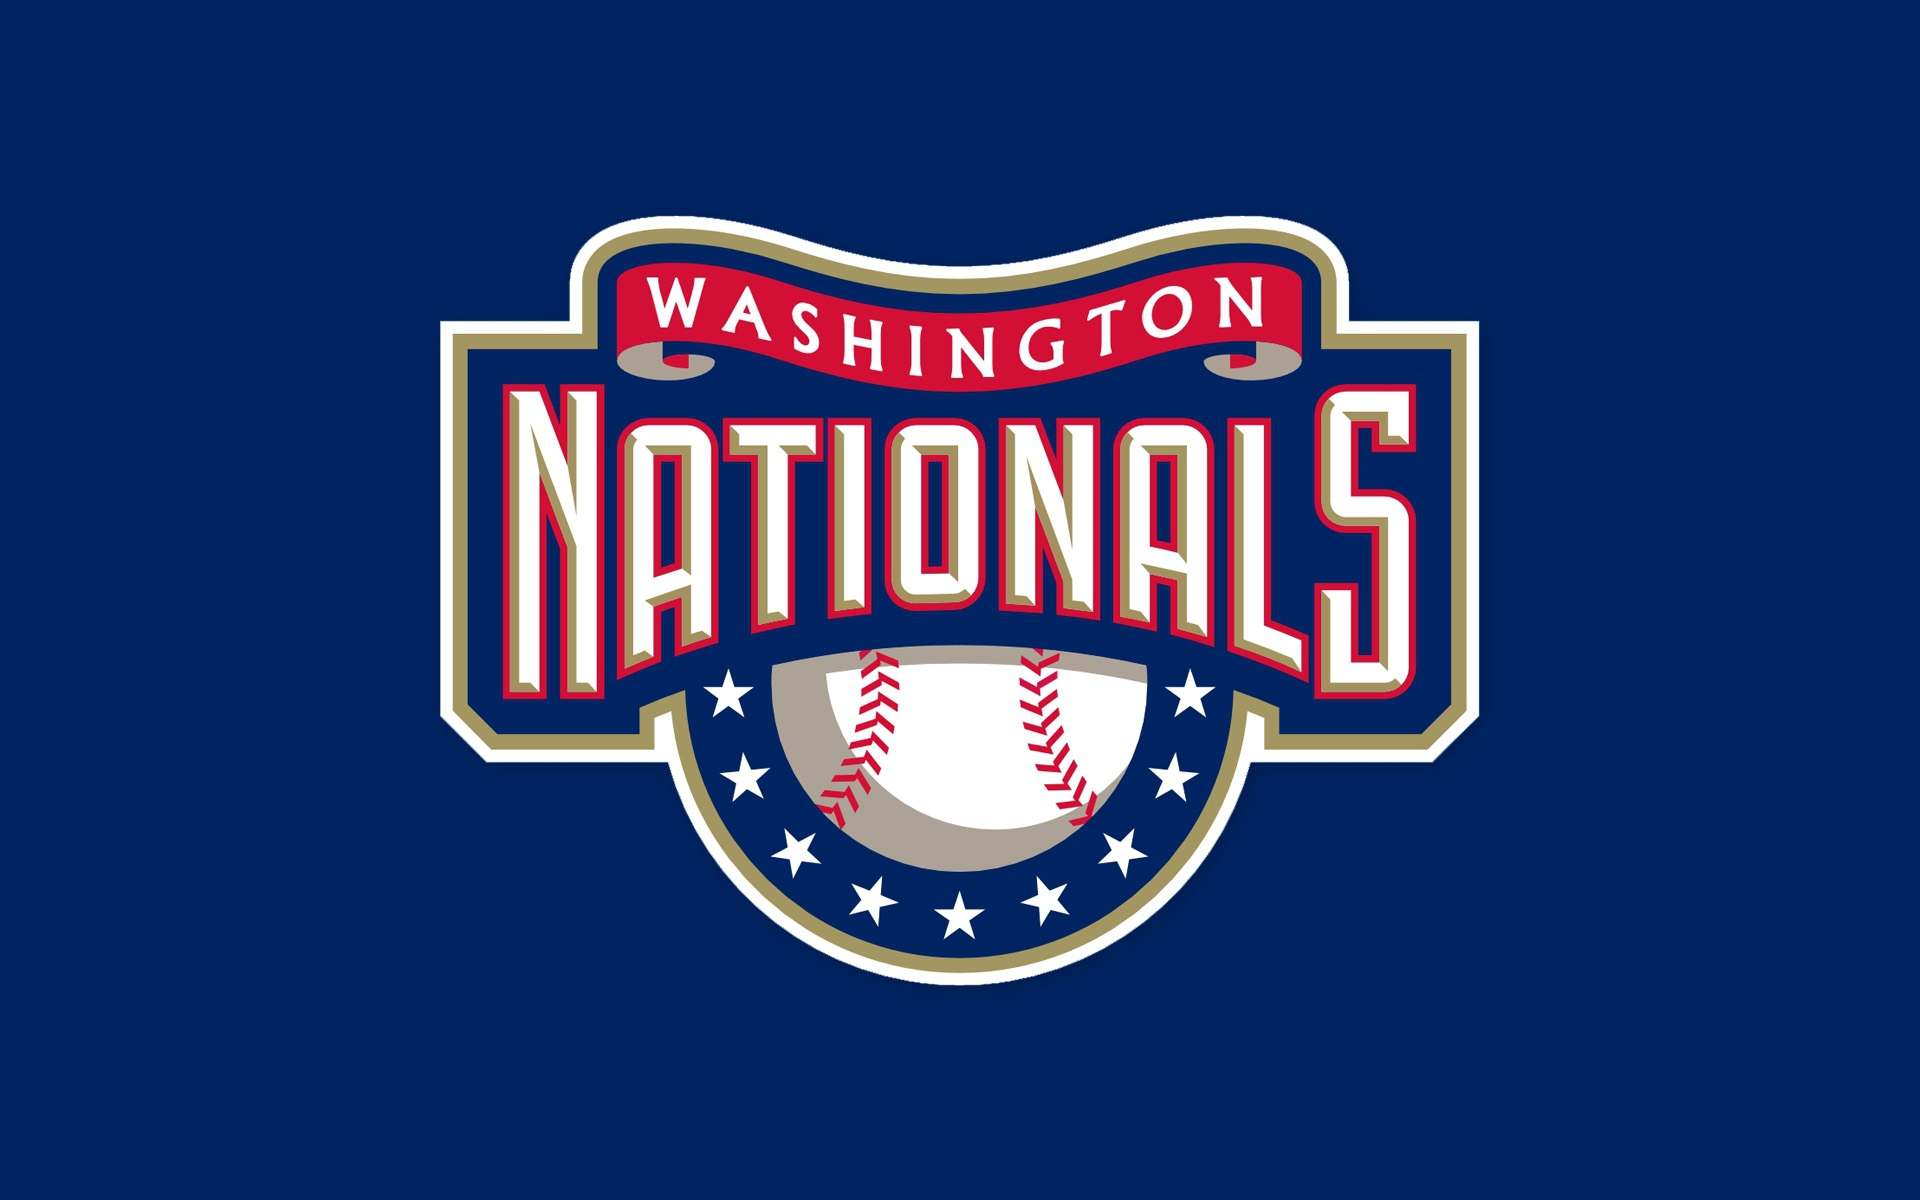 Washington Nationals Wallpapers Images Photos Pictures Backgrounds 1920x1200